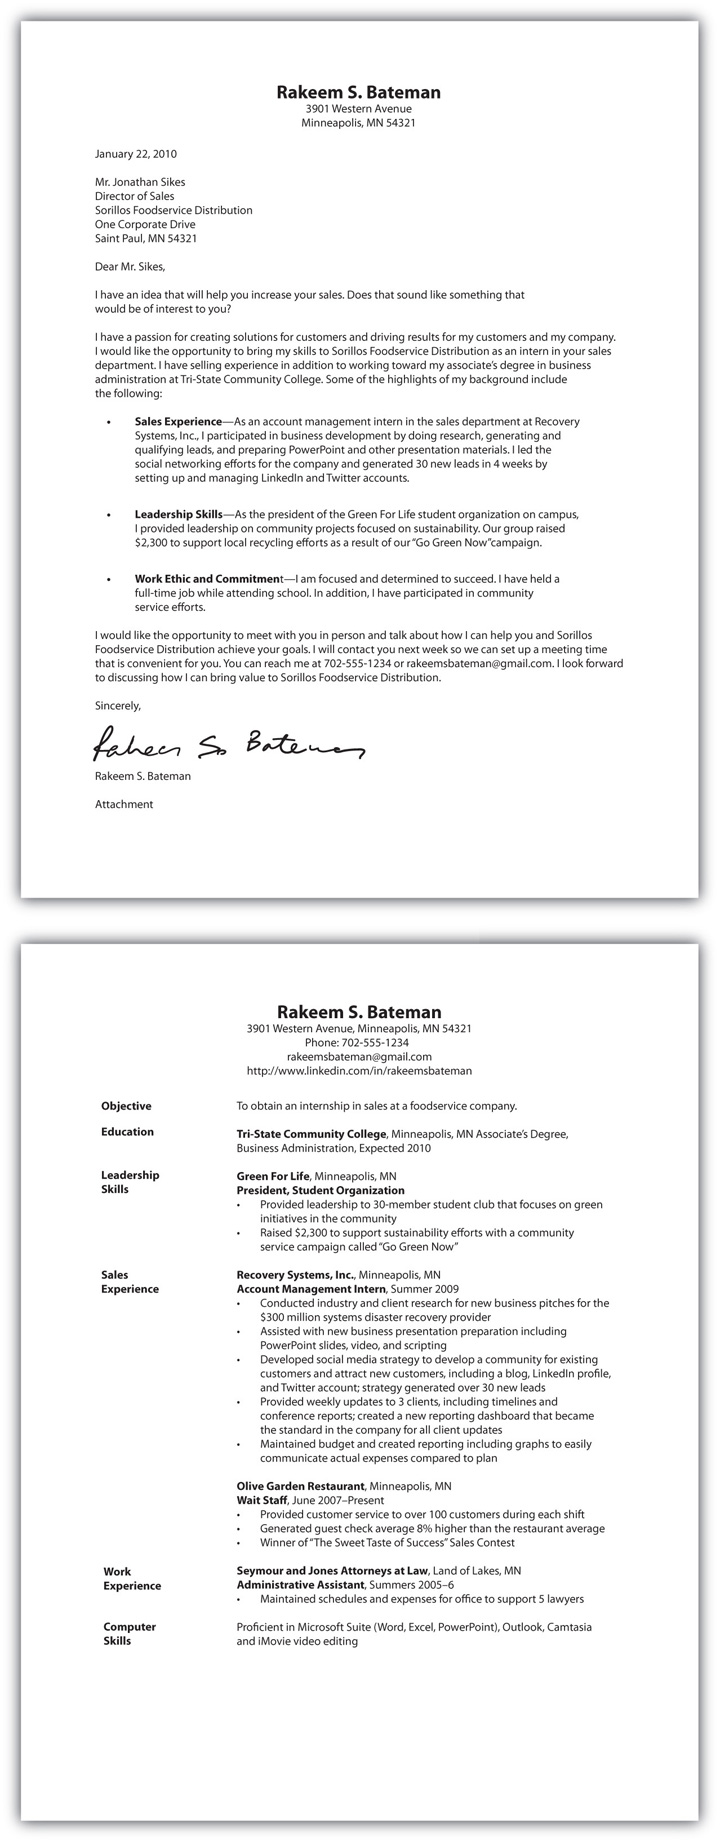 selling résumé and cover letter essentials putting together resume step by email sample Resume Putting Together A Resume Step By Step